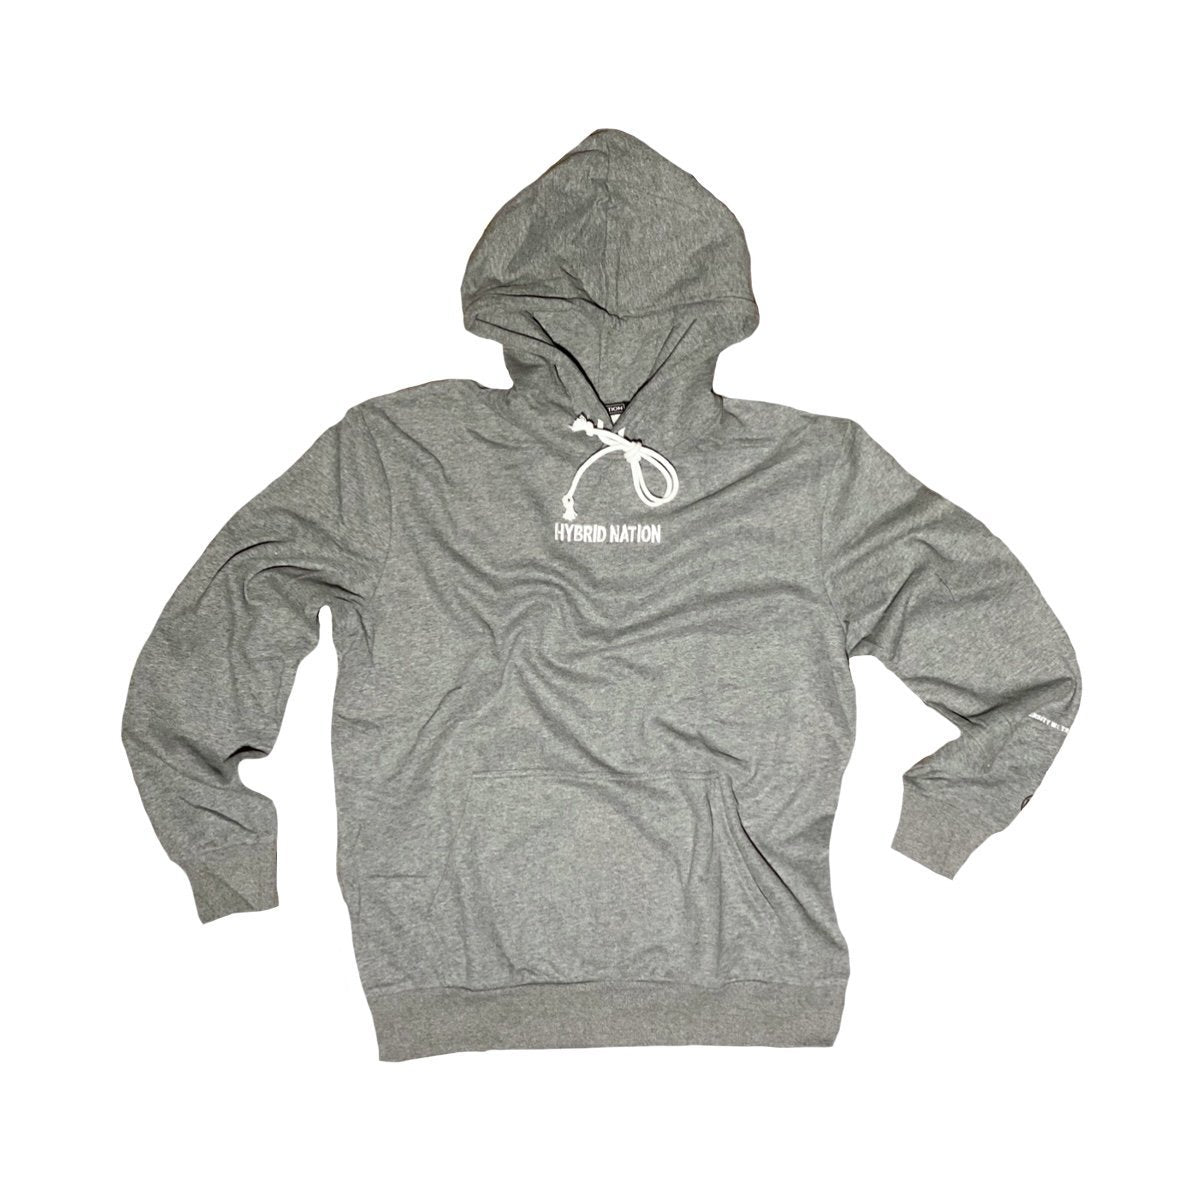 HYBRID NATION BASICS HOODIE (GREY) Men's Basics Sweatshirt Hybrid Nation (China) XS